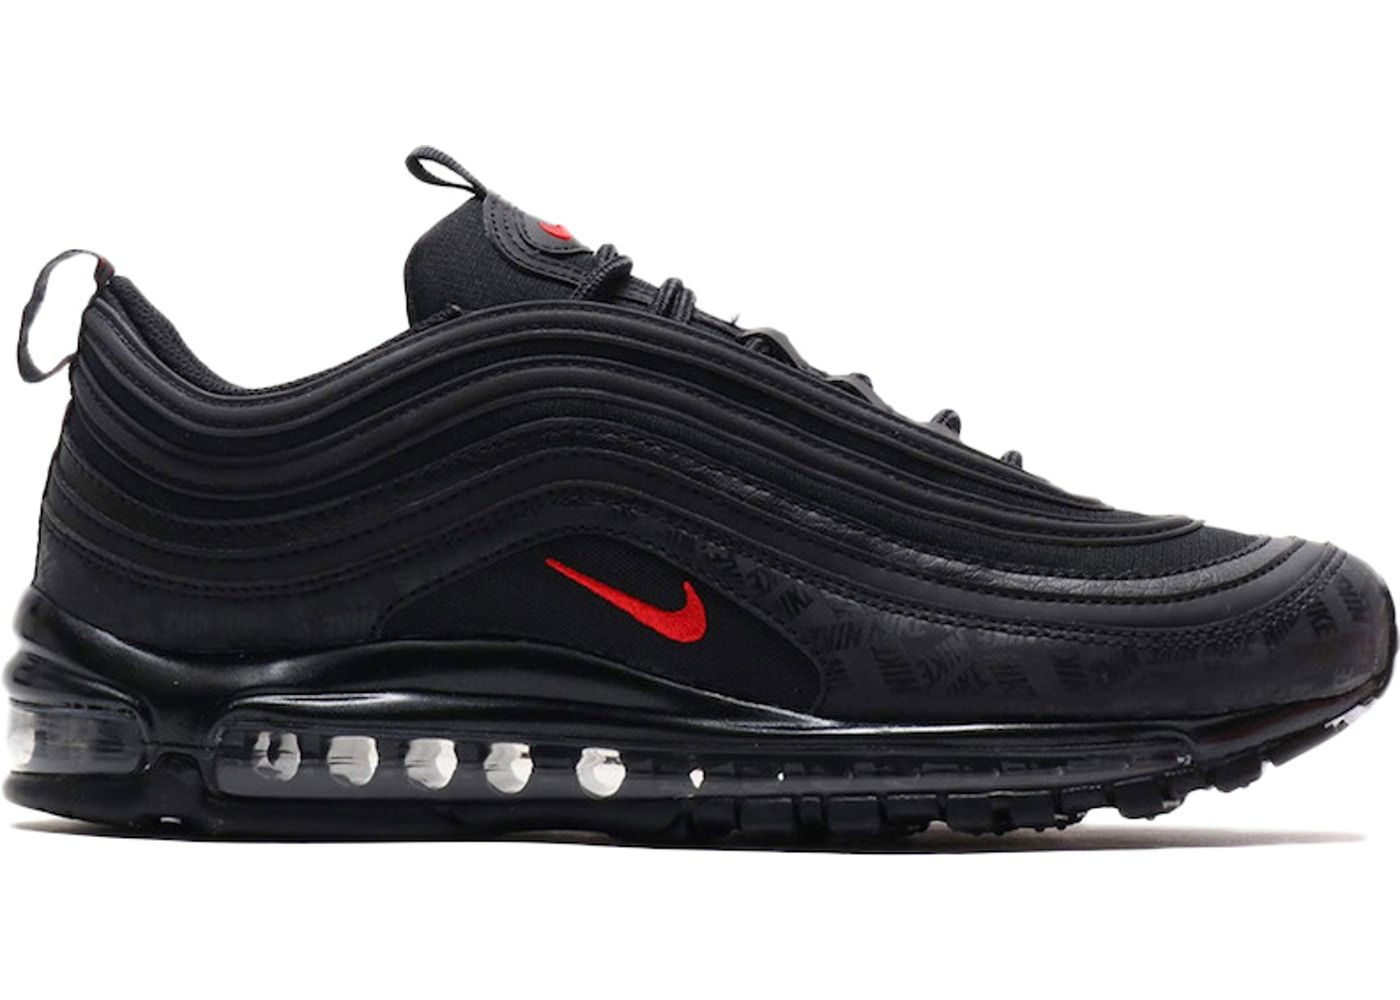 087ae1f3 Air Max 97 All-Over Print Black Red in 2019 | Shoes | Nike air max ...